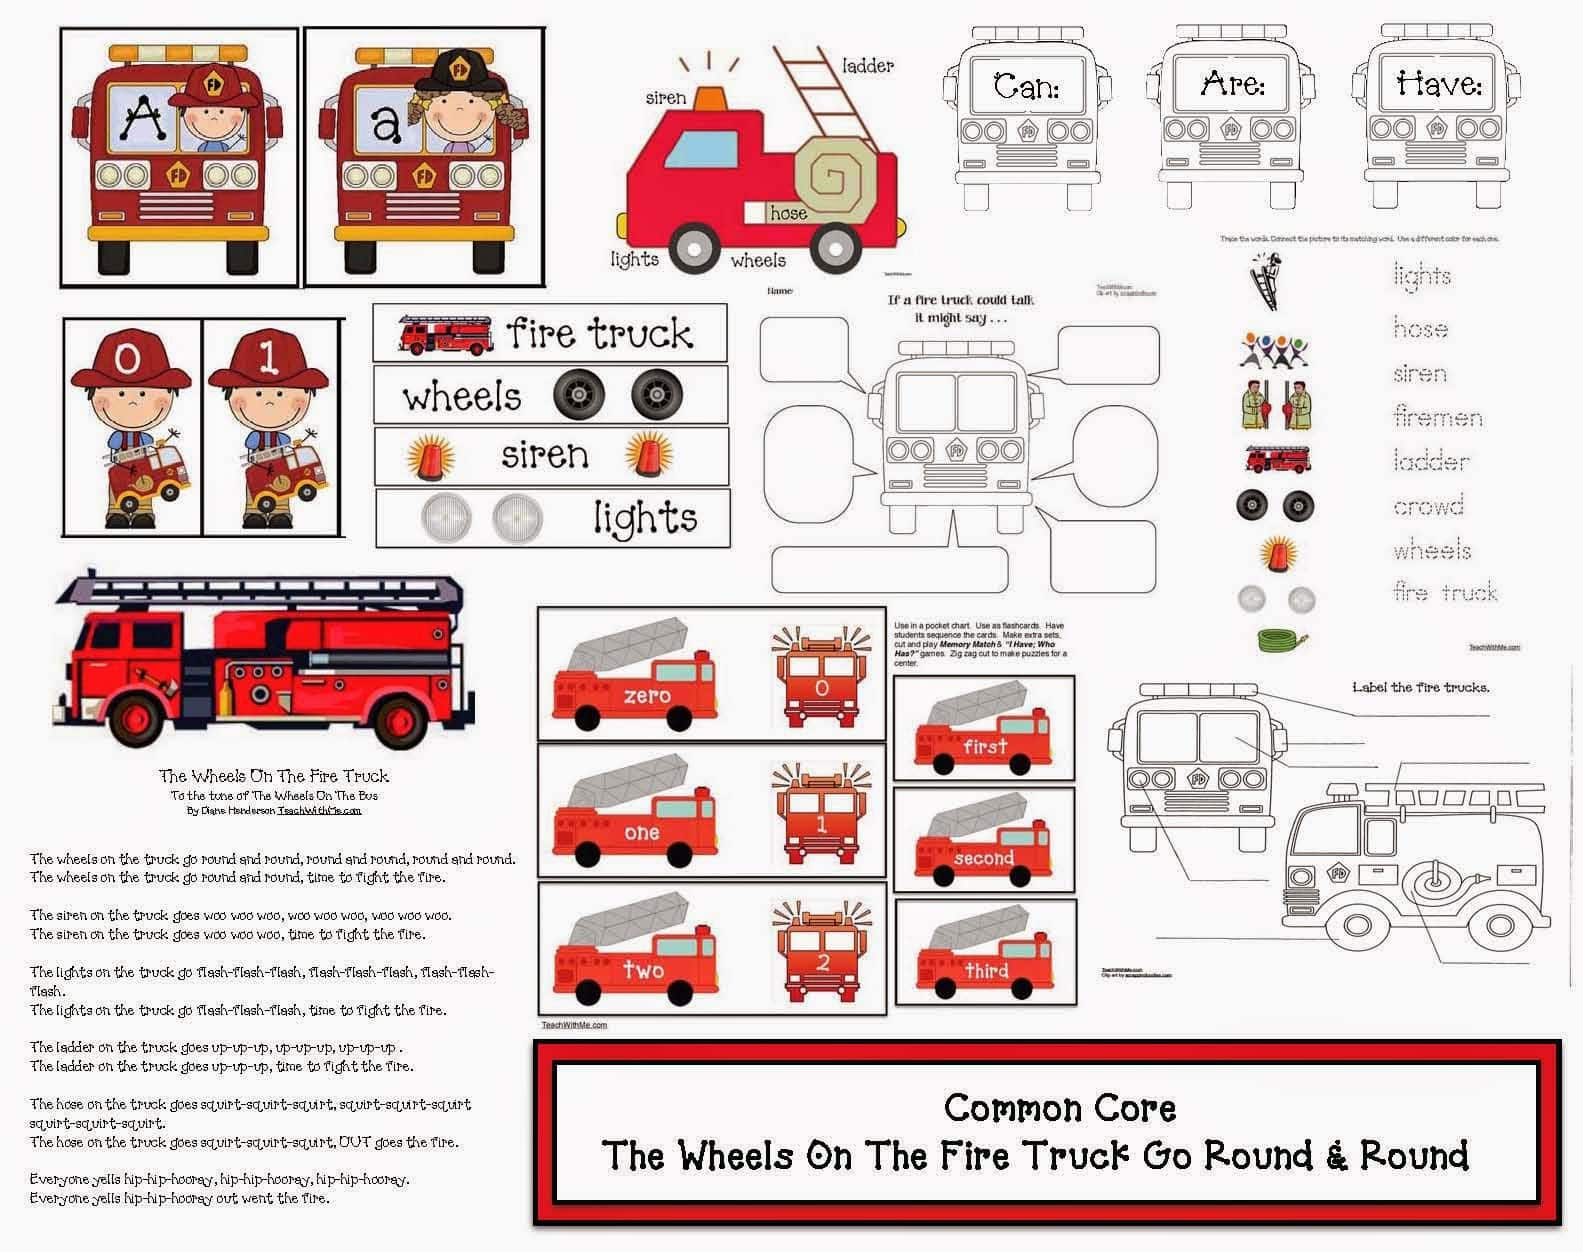 The Wheels On The Fire Truck Go Round Amp Round Common